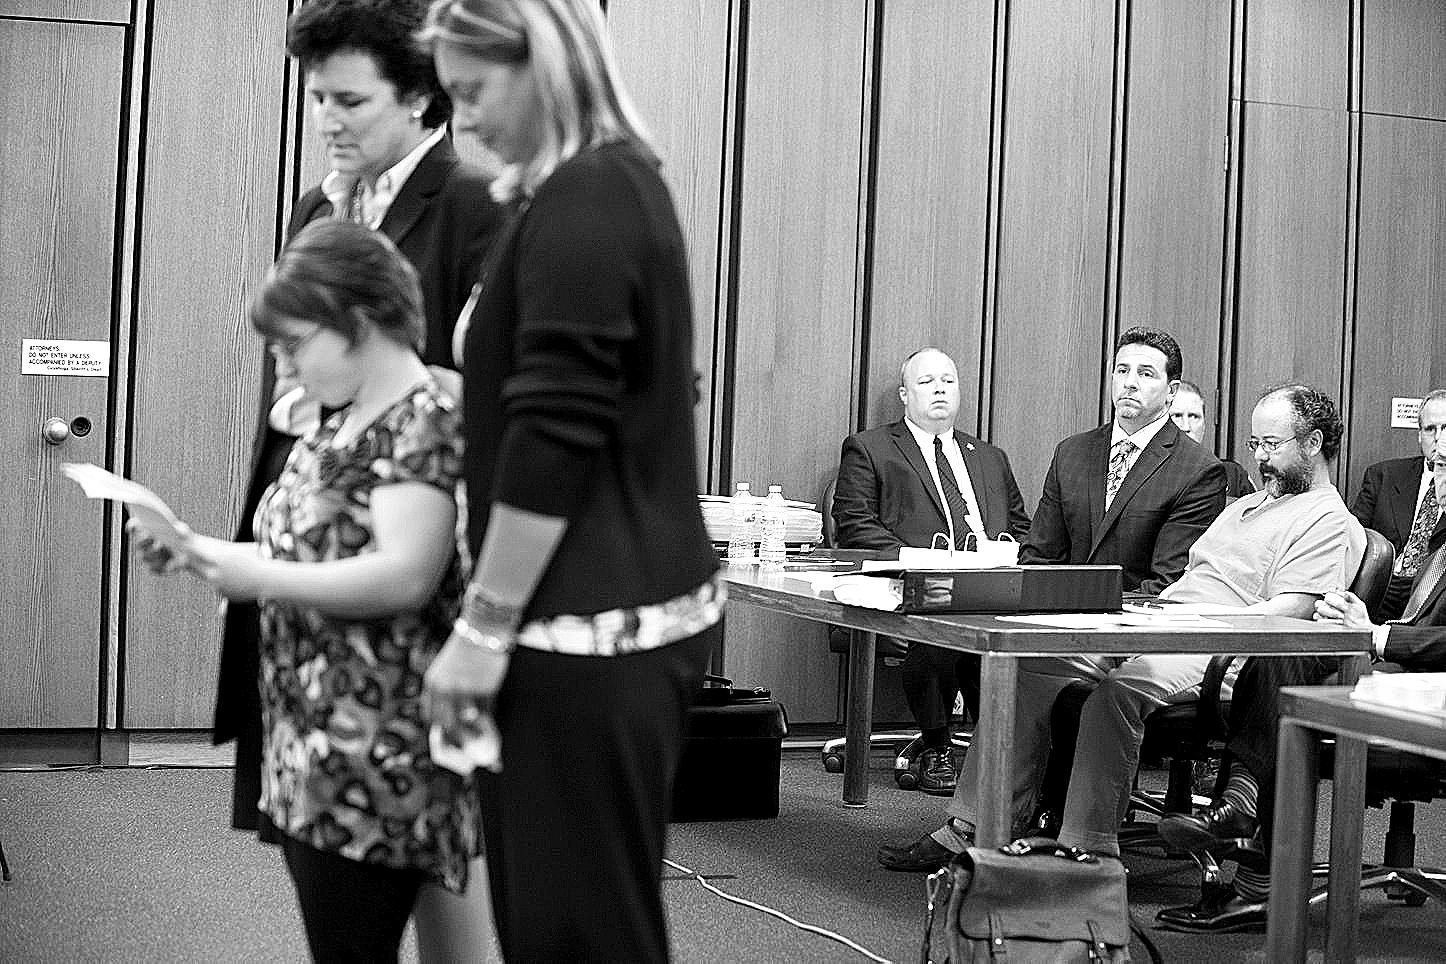 Michelle Knight, left, addresses the court while Ariel Castro listens in the background on Aug. 1, 2013, in Cleveland.